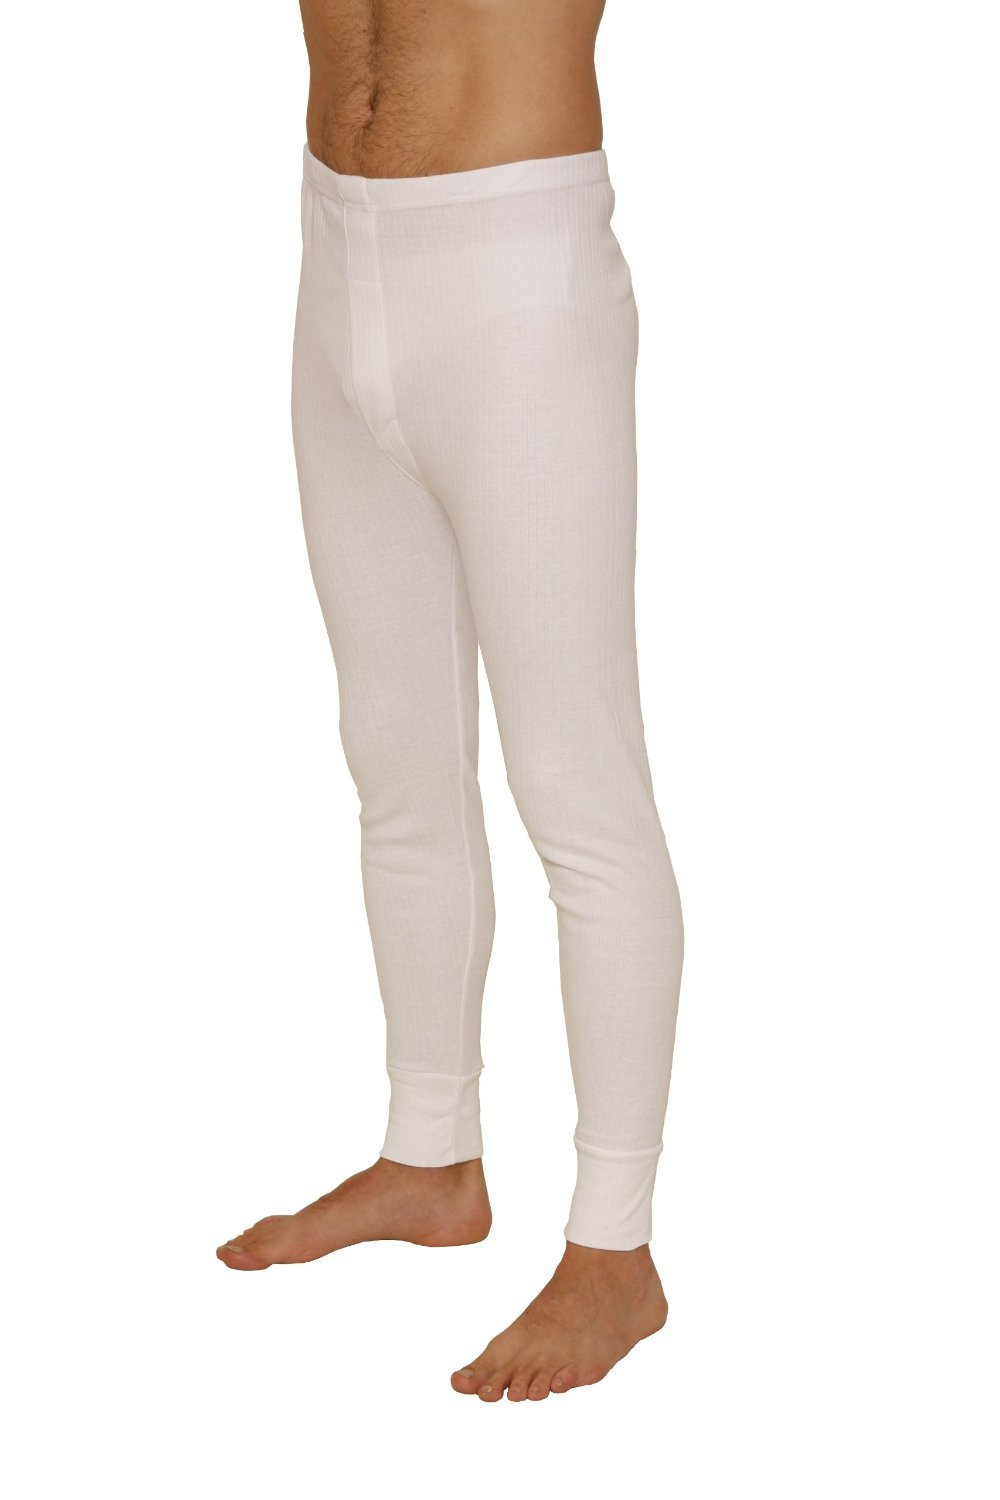 Octave Mens Thermal Underwear Long John/Long Underwear (5X-Large: Waist 54-56 inches, White)